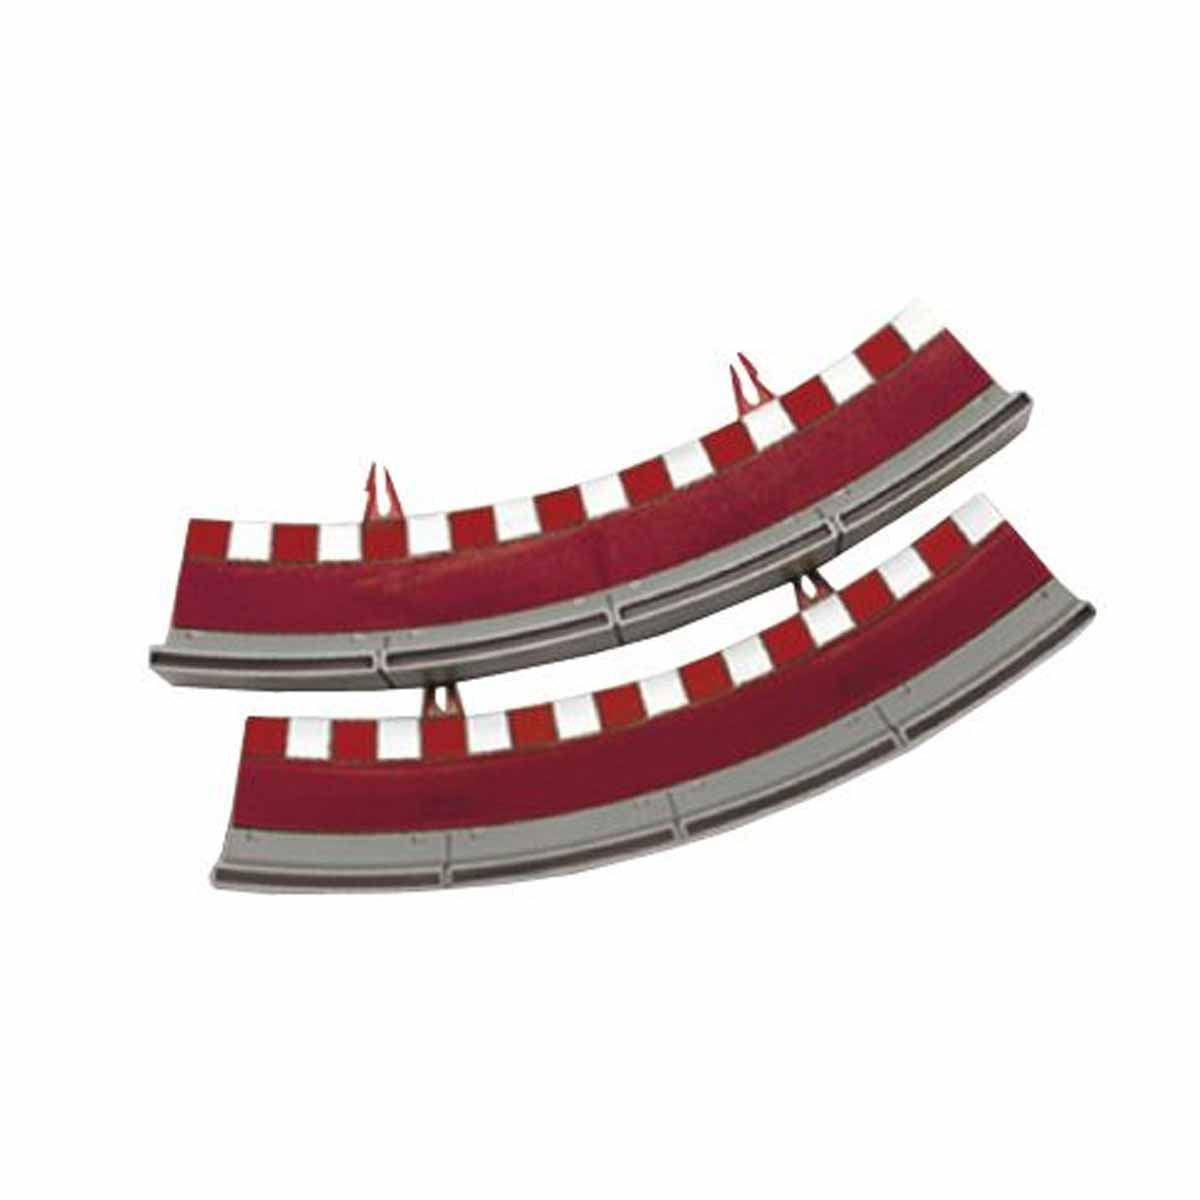 SCX Standard Curve Border with Barrier (SCX-B10100)